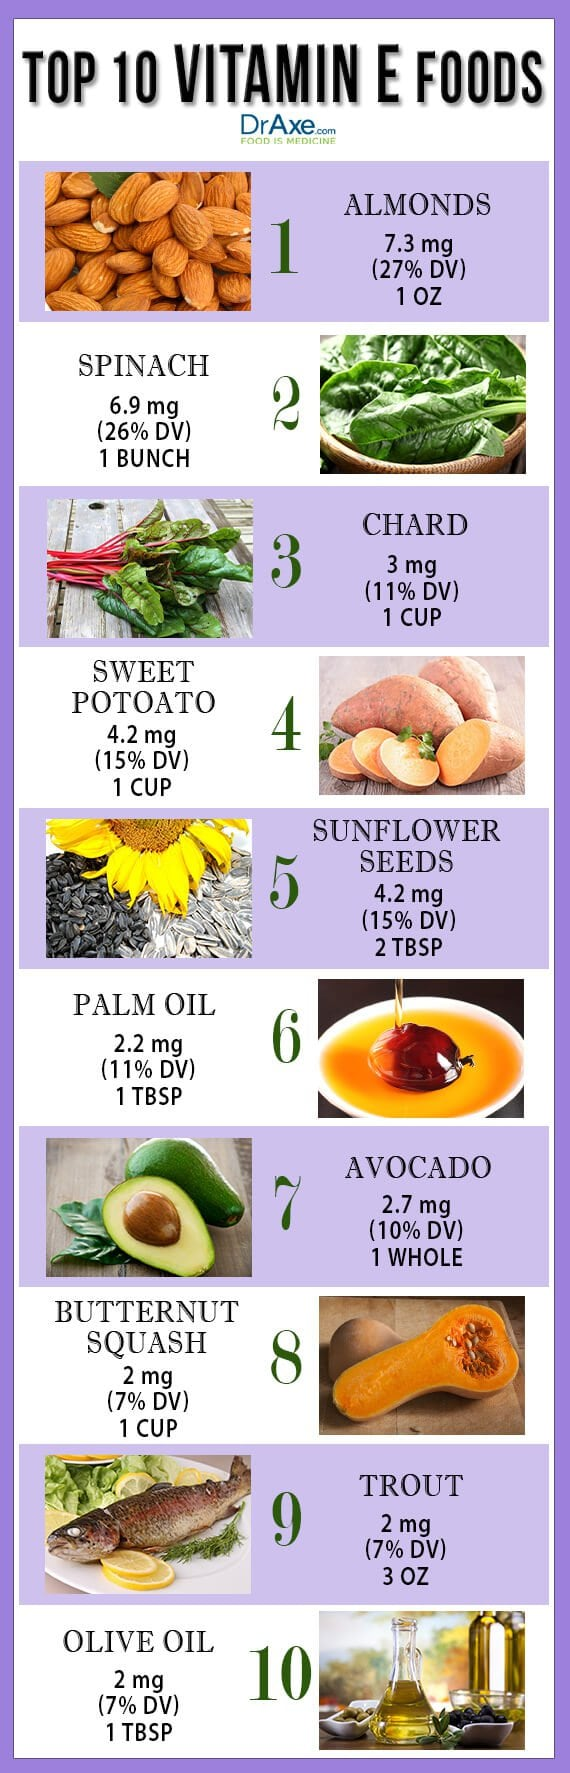 Top 10 Vitamin E Rich Foods